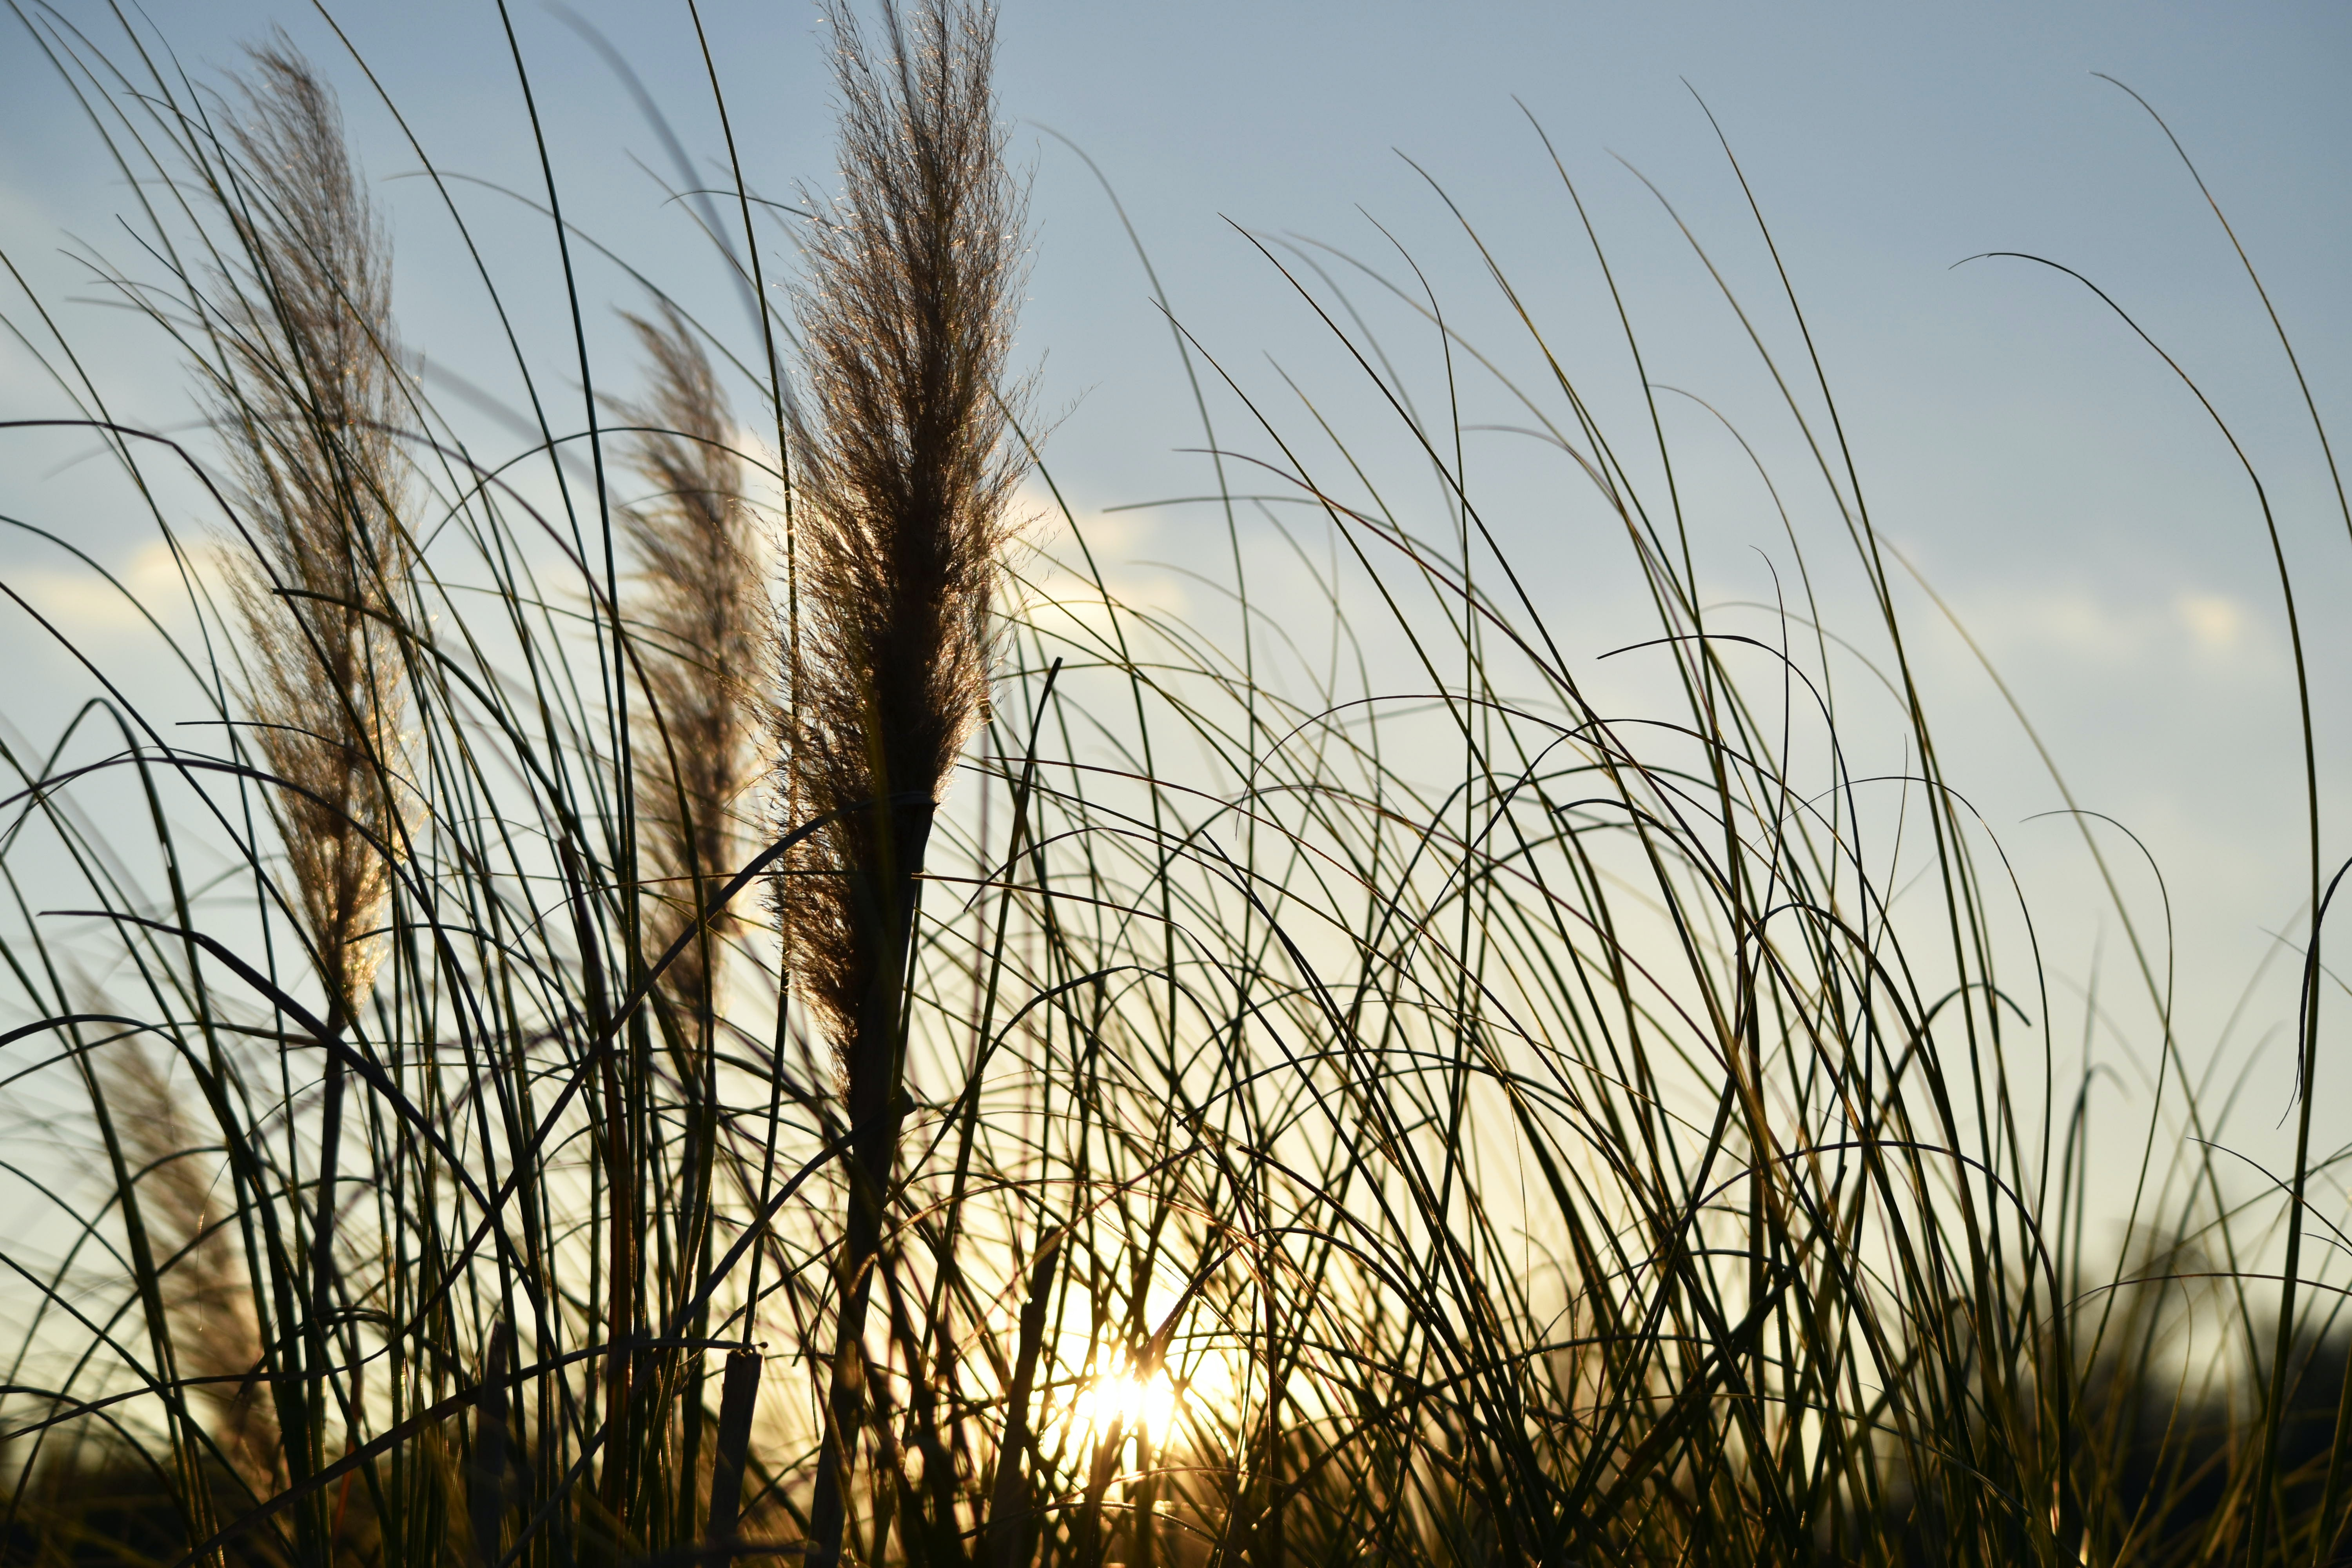 Sunset behind feather-like reeds and thin grasses swaying in the wind